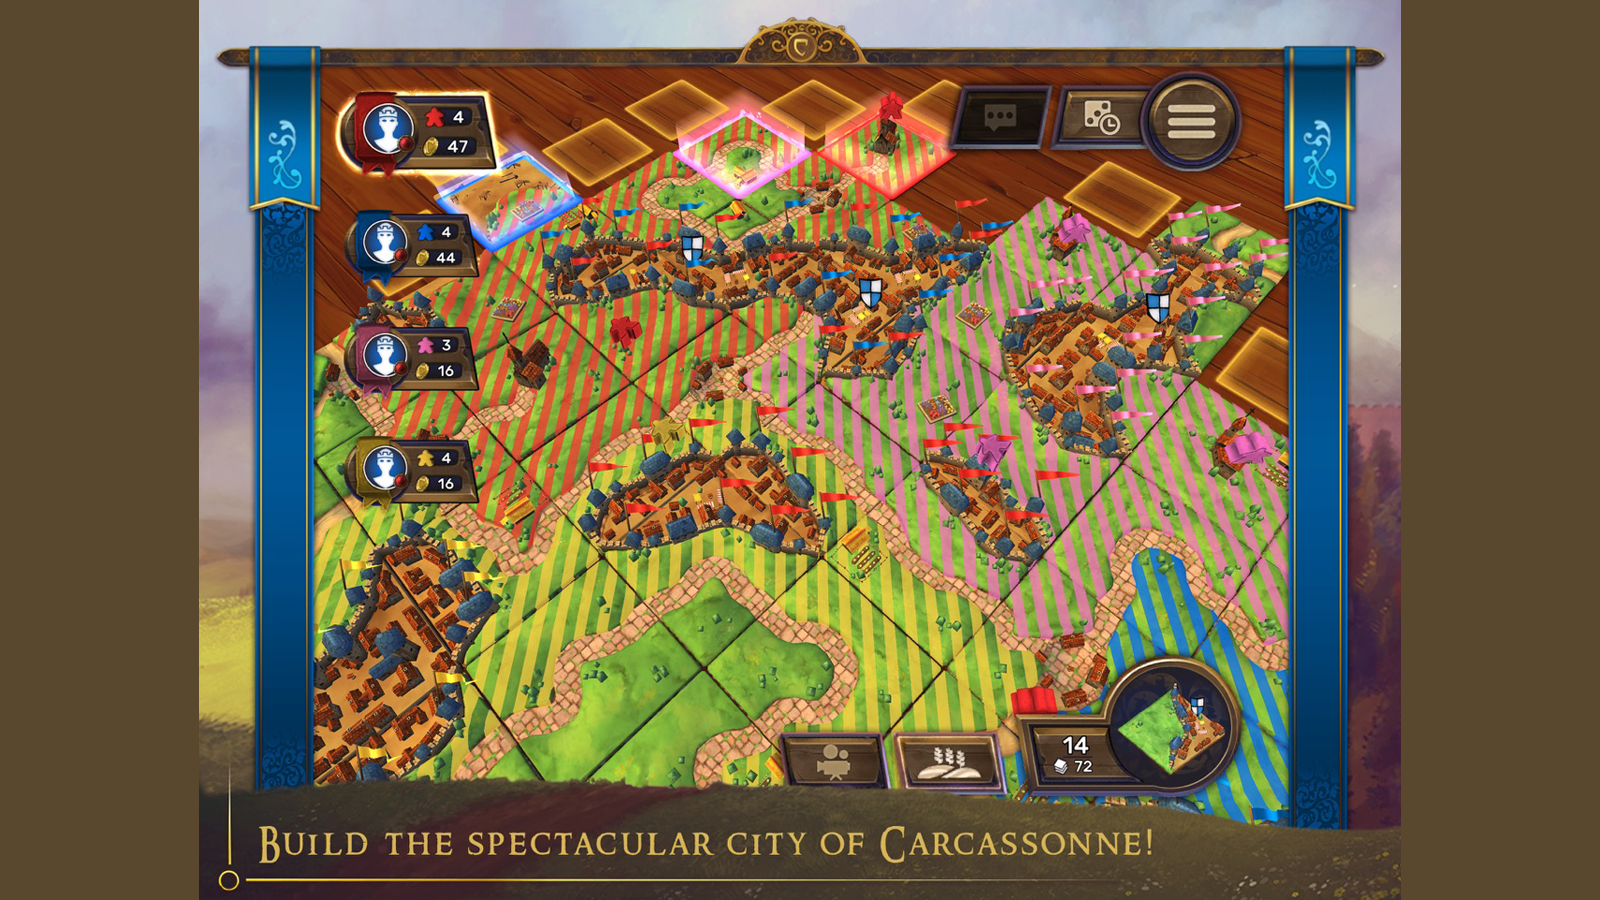 Carcassonne sample gameplay with tiles